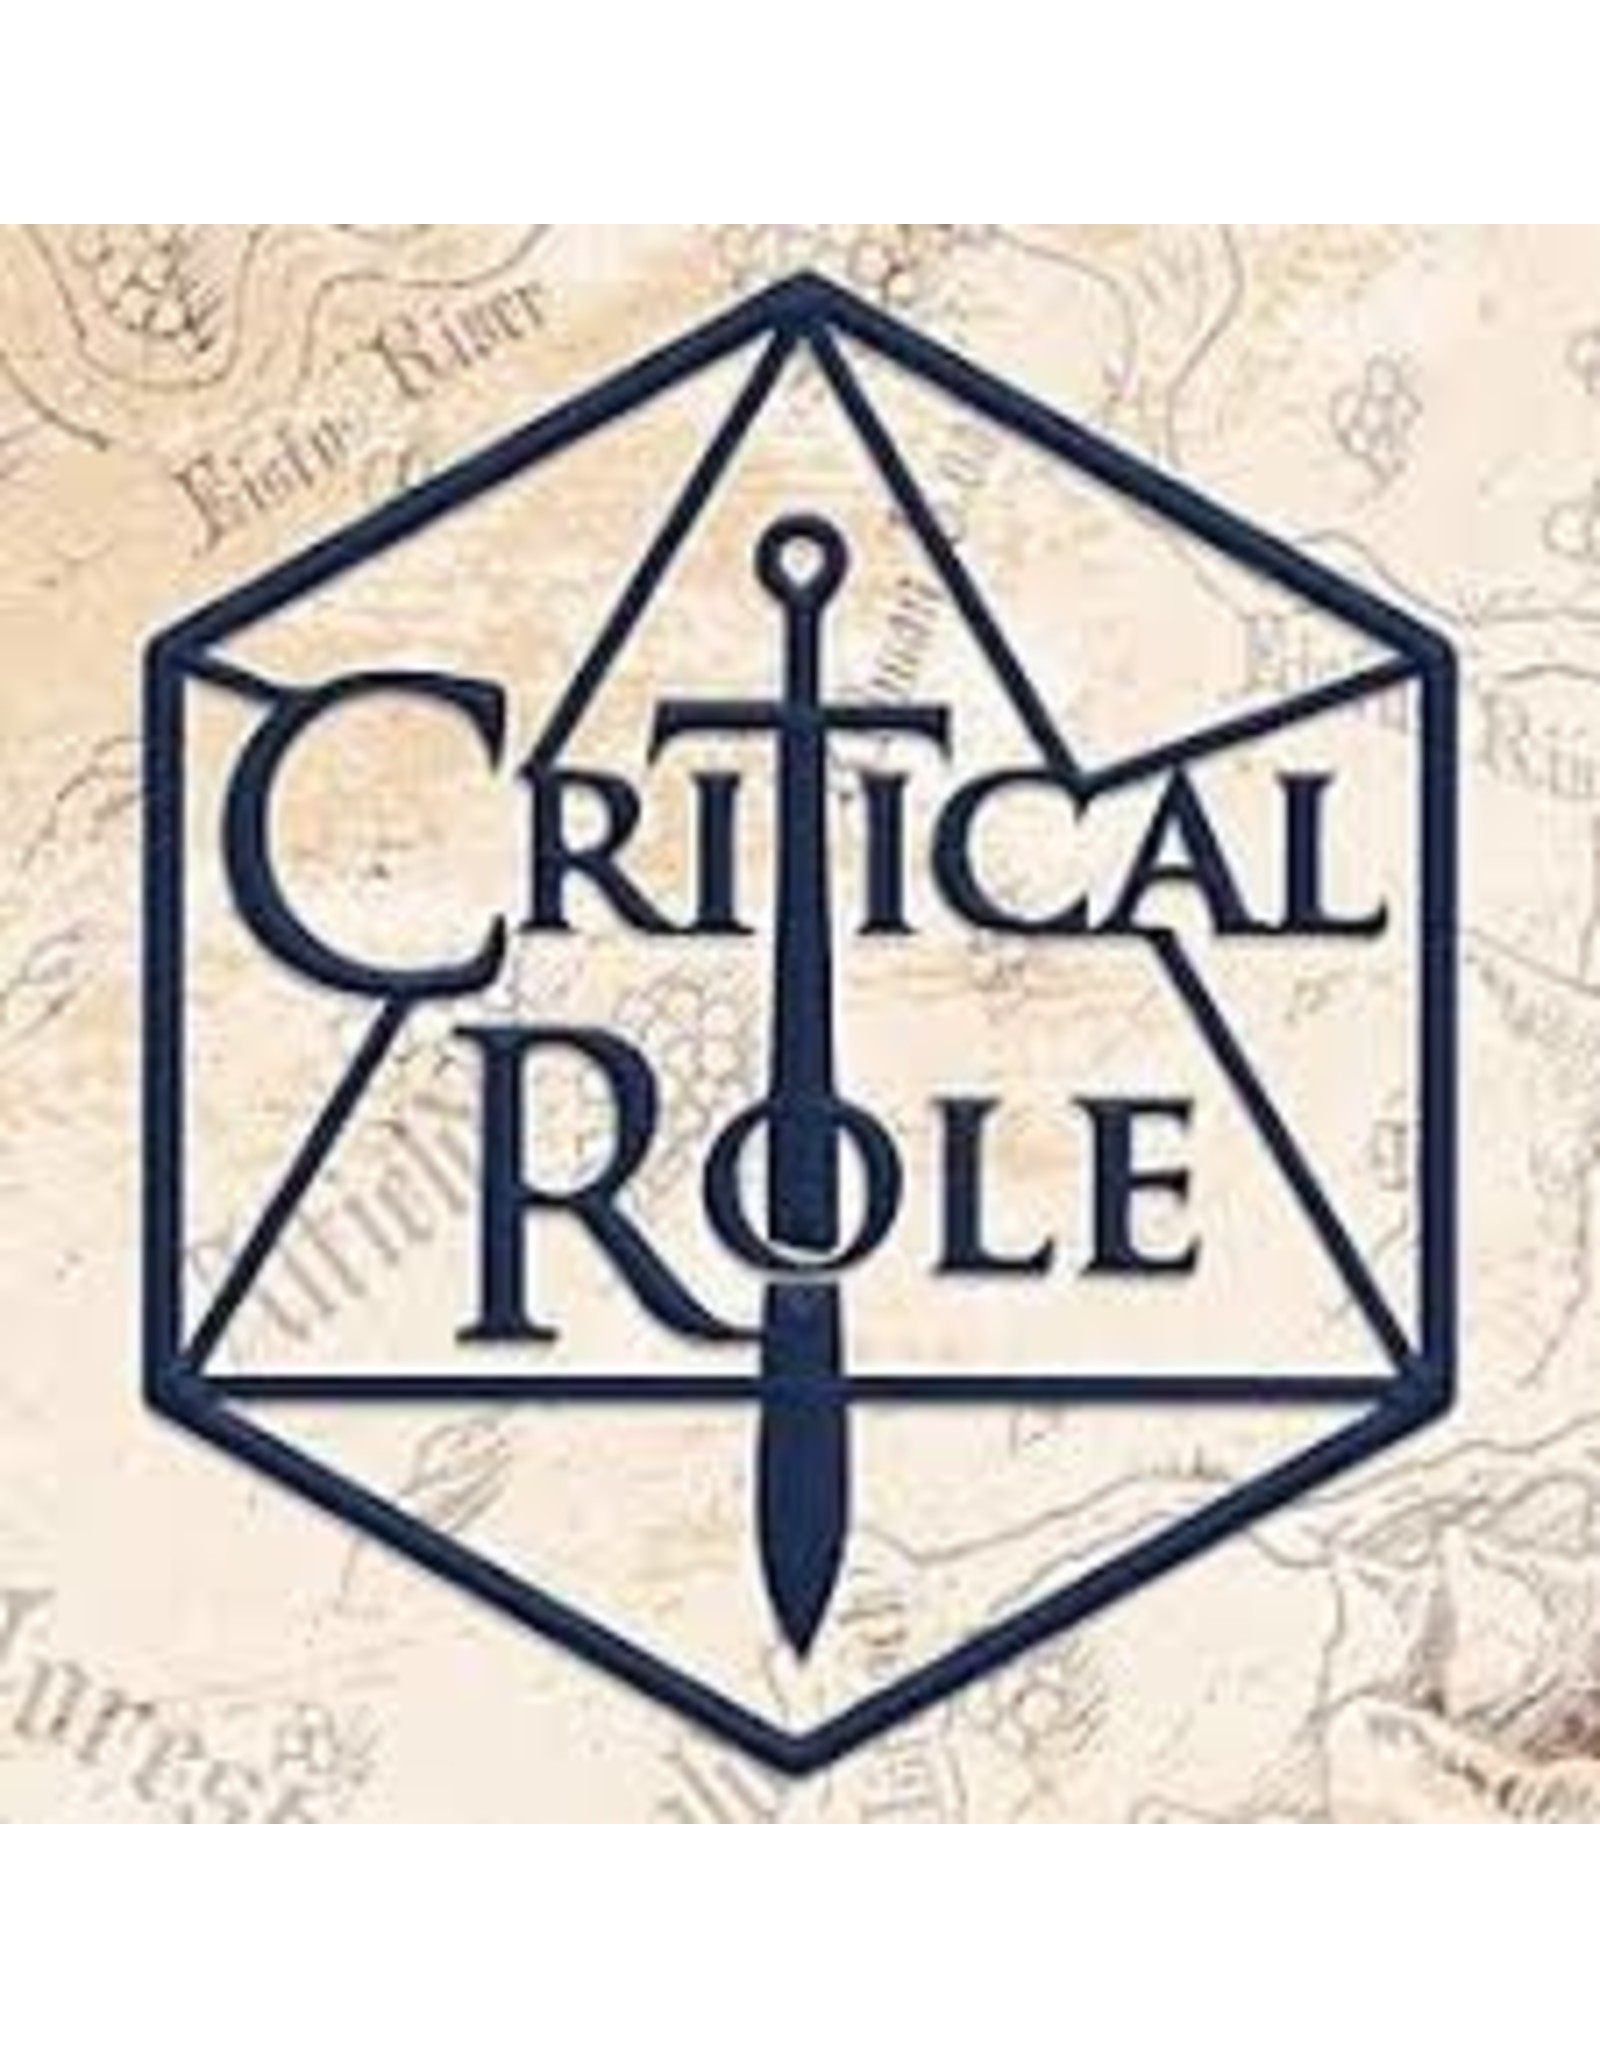 Critical Role Critical Role Chibi Pin No. 1 - Jester (Live Show Variant) (Limited)